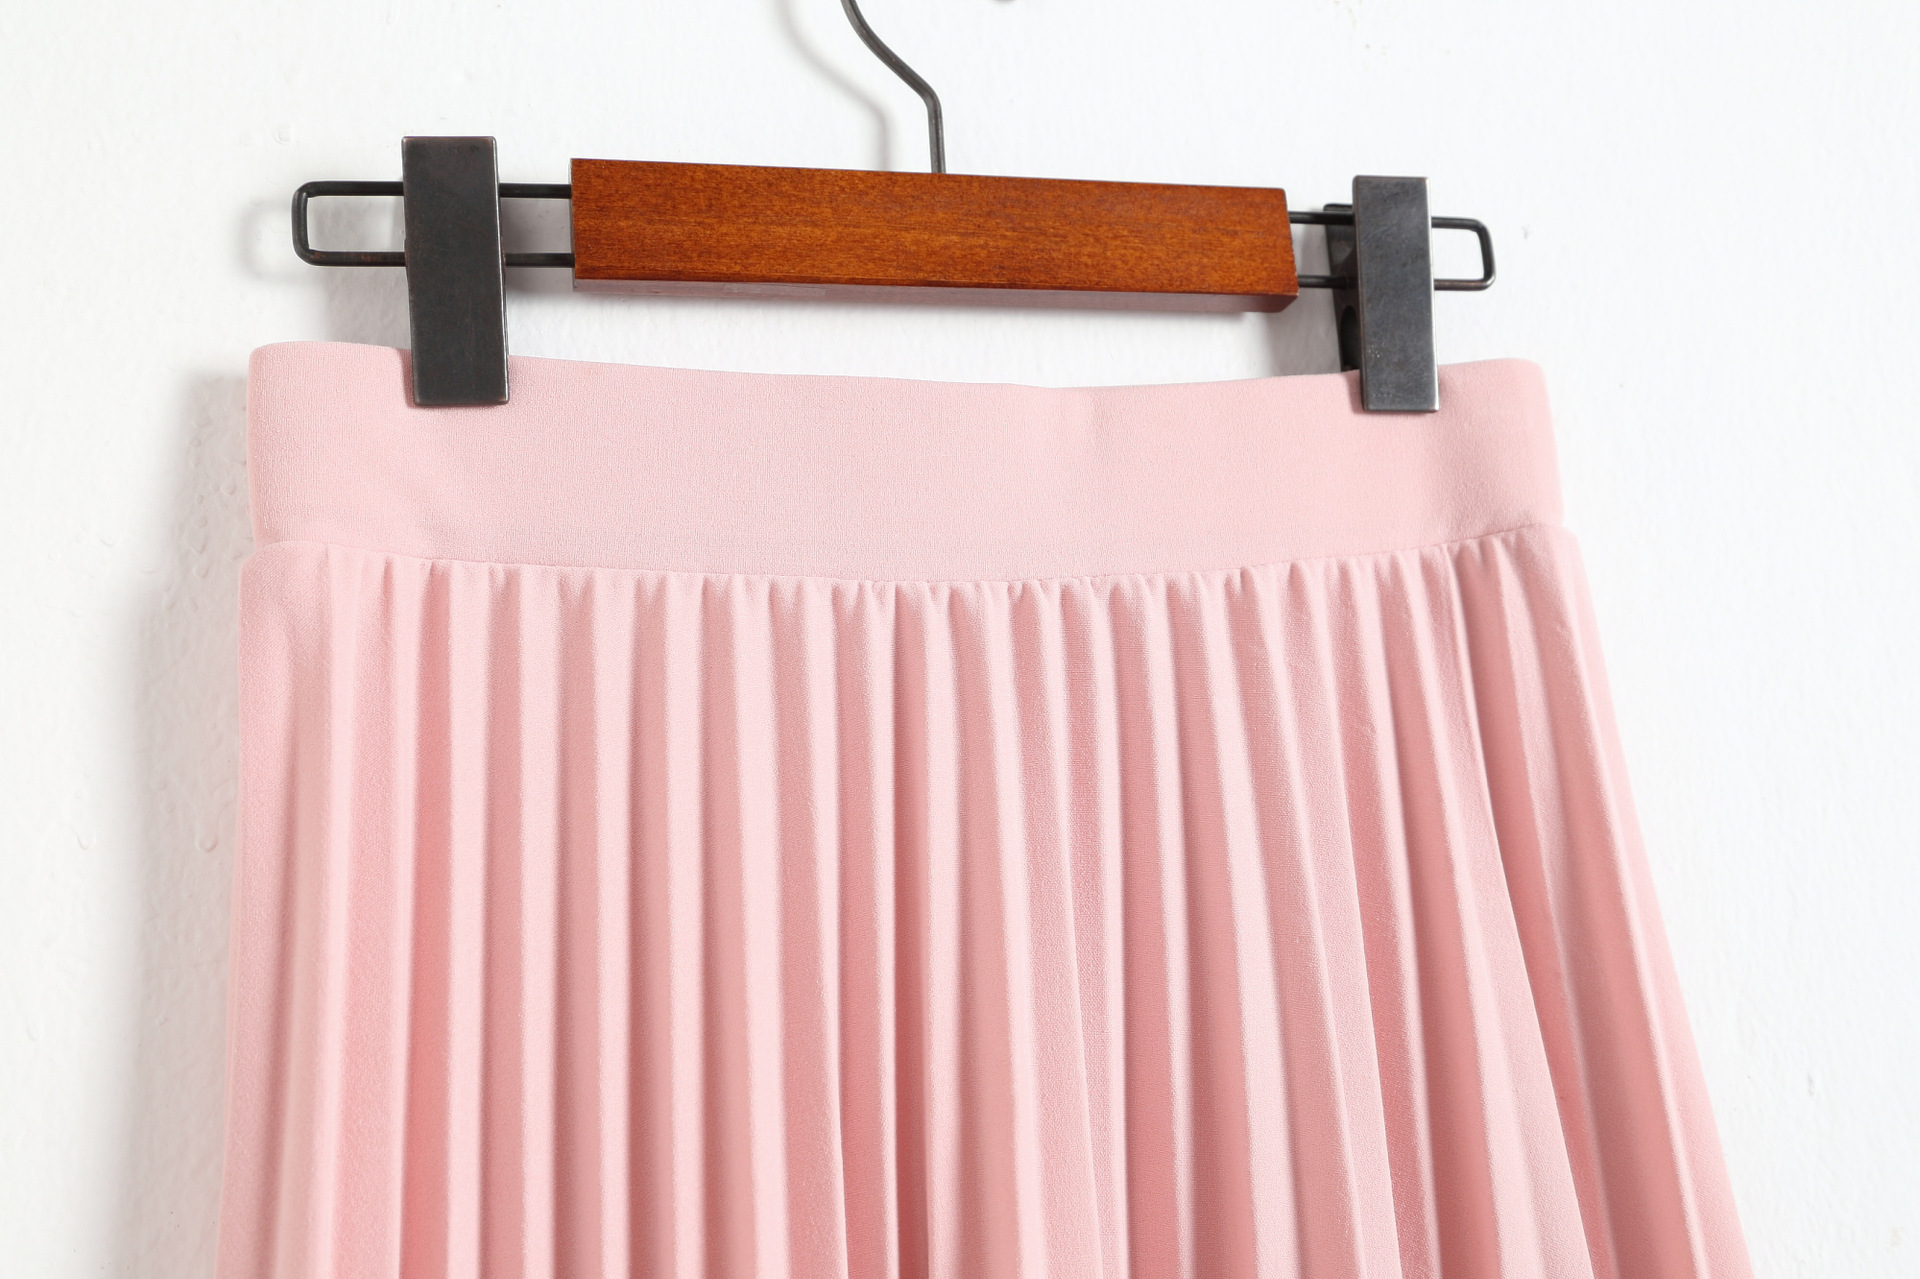 CRRIFLZ 19 Spring Autumn Fashion Women's High Waist Pleated Solid Color Half Length Elastic Skirt Promotions Lady Black Pink 13